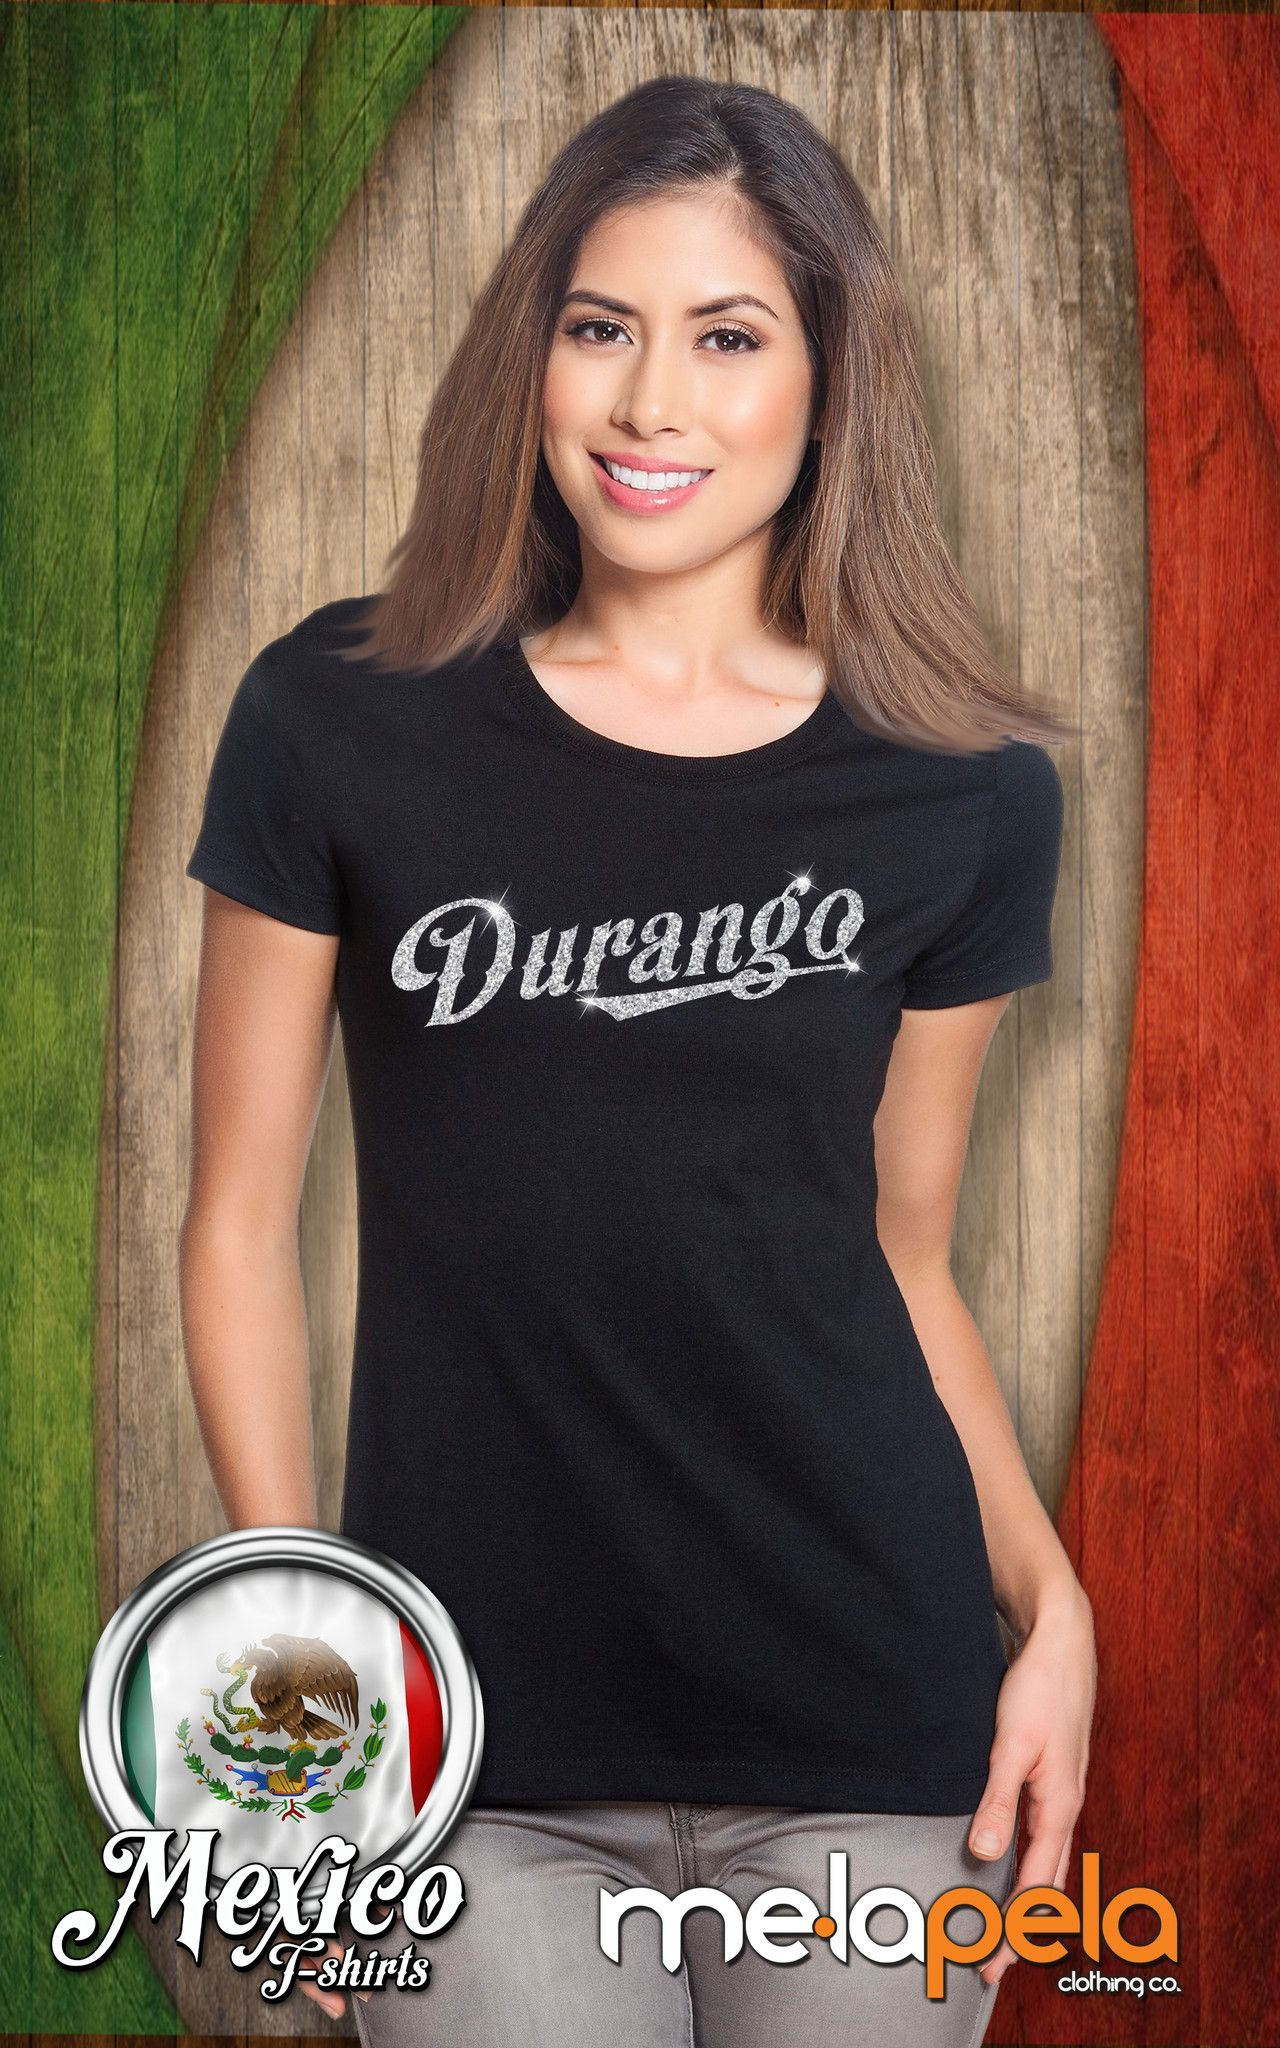 Durango, Mexico T-Shirt with Glitter Lettering - (Women Sizes)